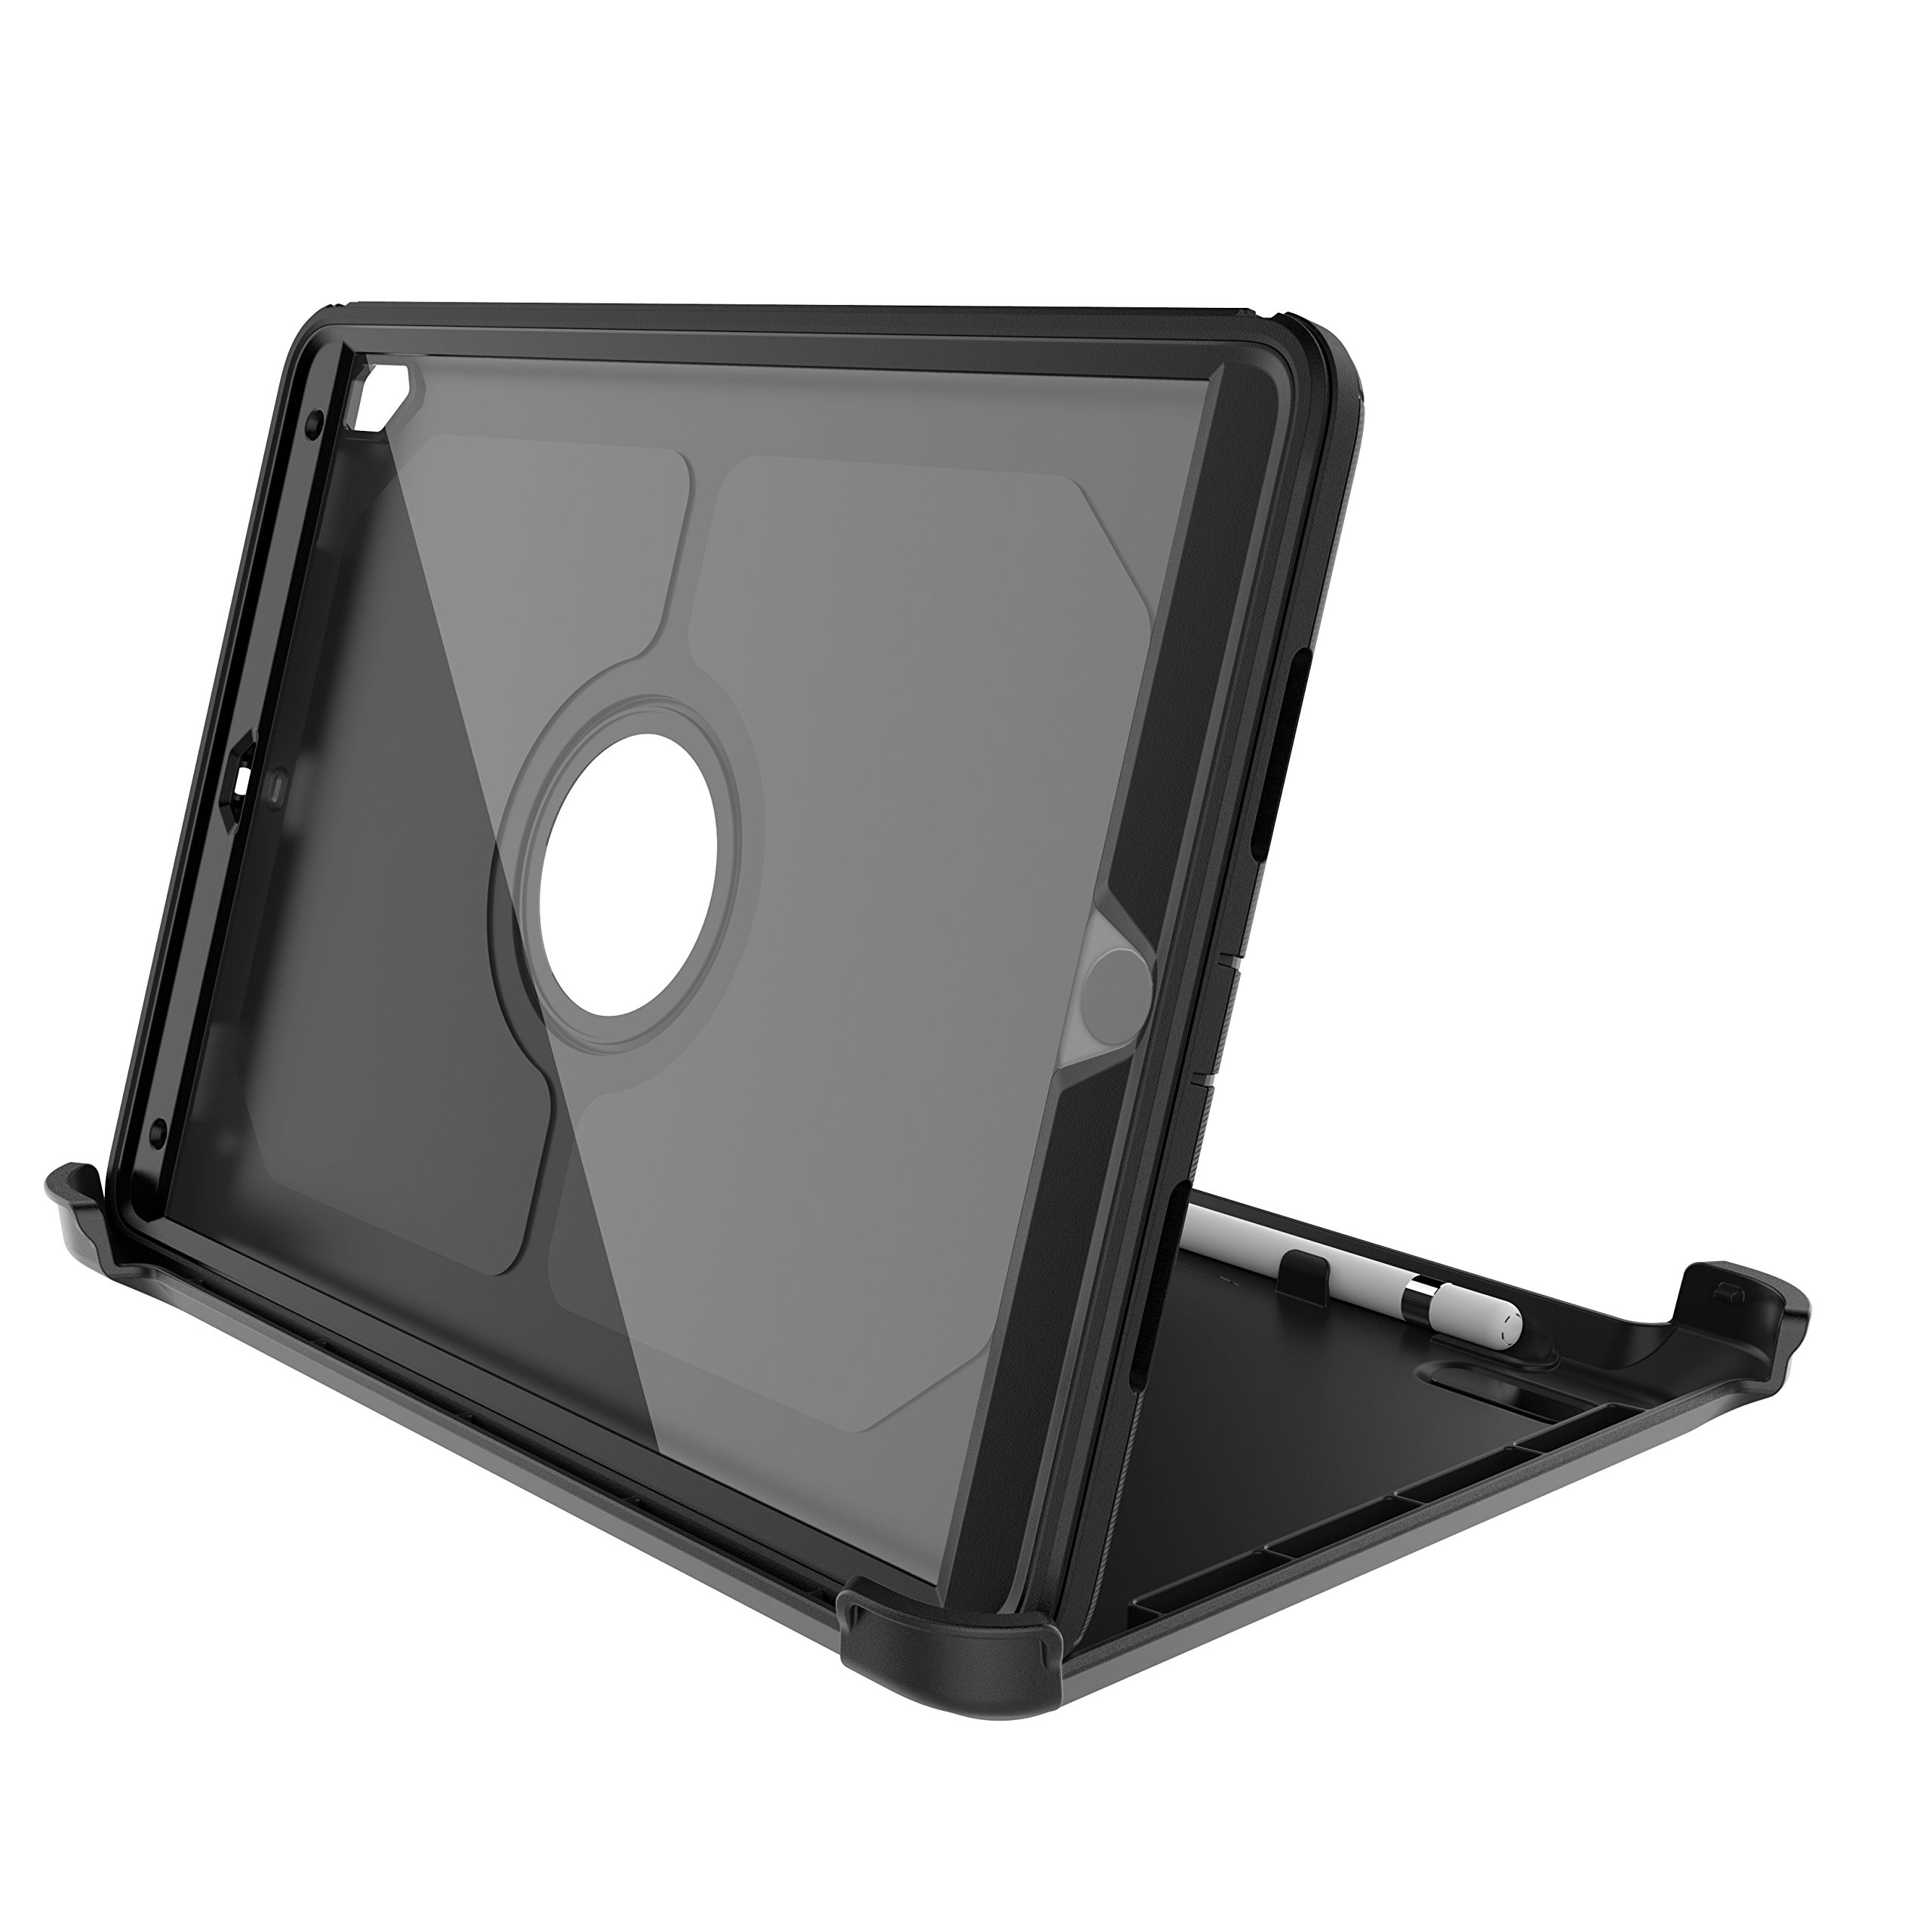 OtterBox DEFENDER SERIES Case for iPad Pro 10.5'' & iPad Air (3rd Generation) - Retail Packaging - BLACK by OtterBox (Image #9)